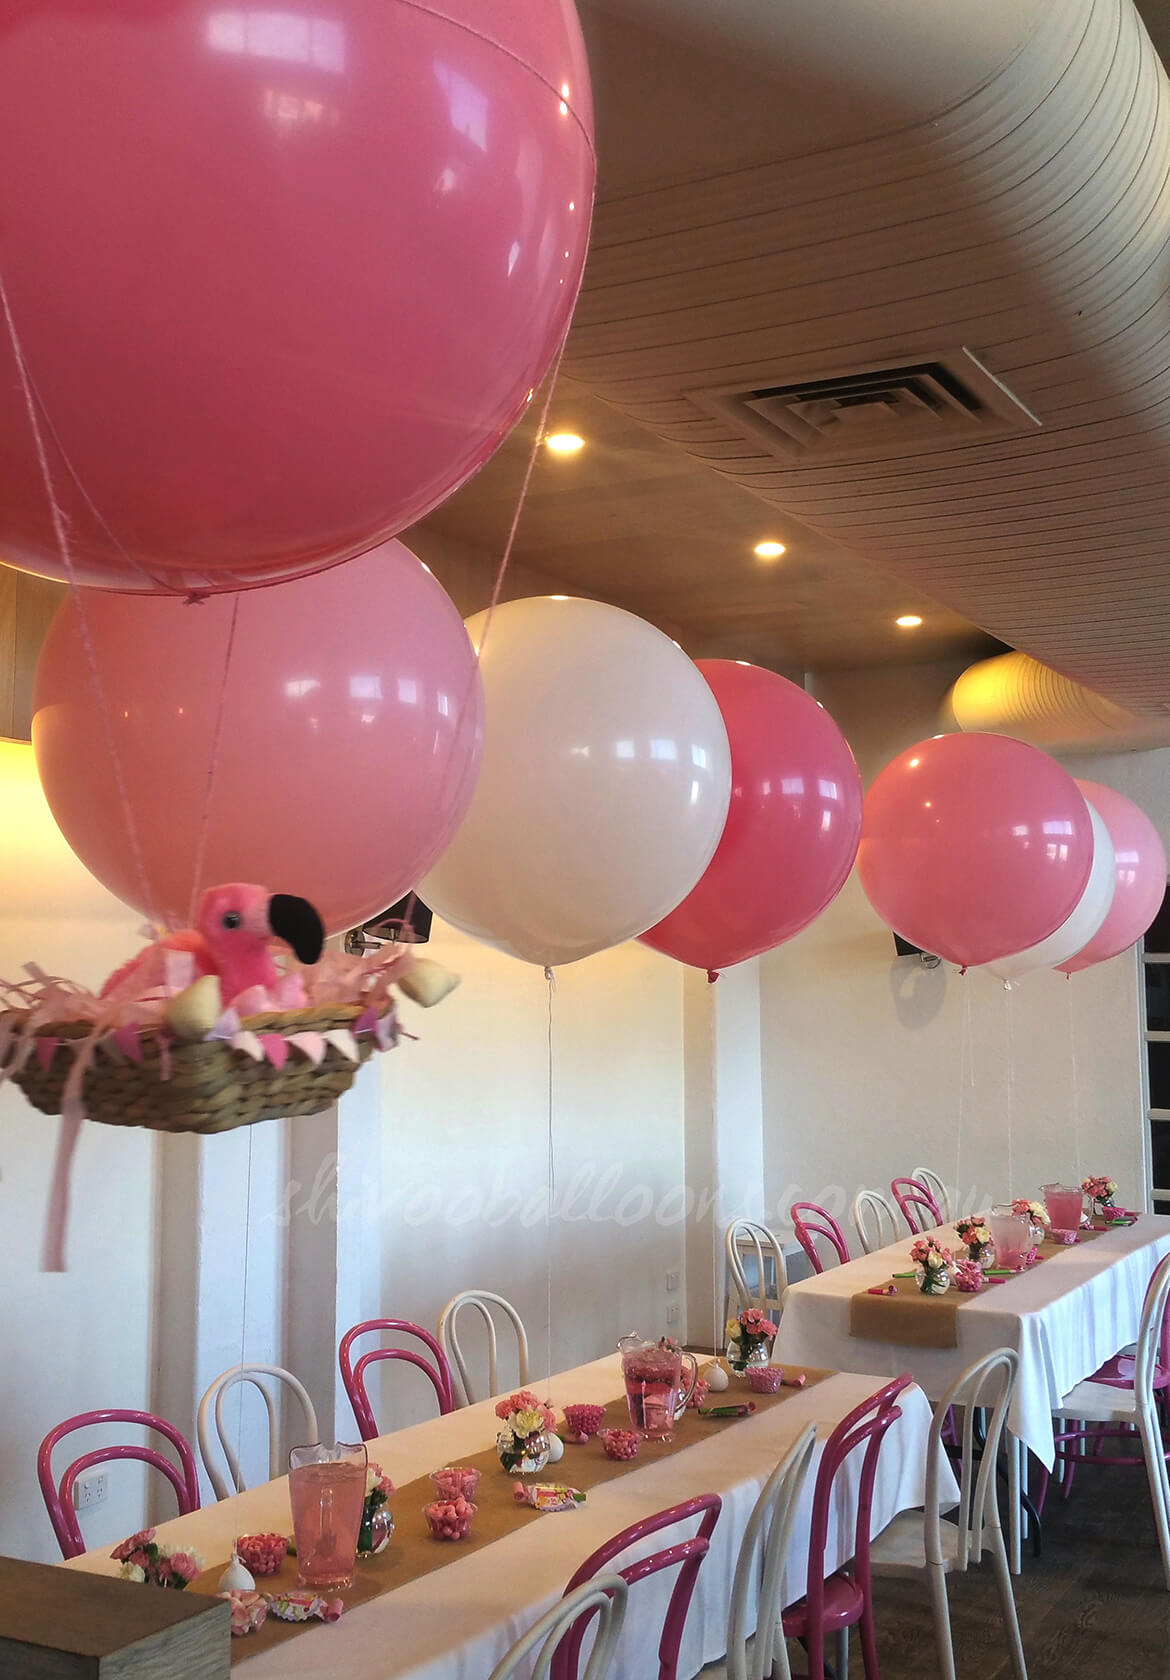 pink balloons party - see our events - Balloons Coburg North - shivoo balloons and decor specialists in coburg north